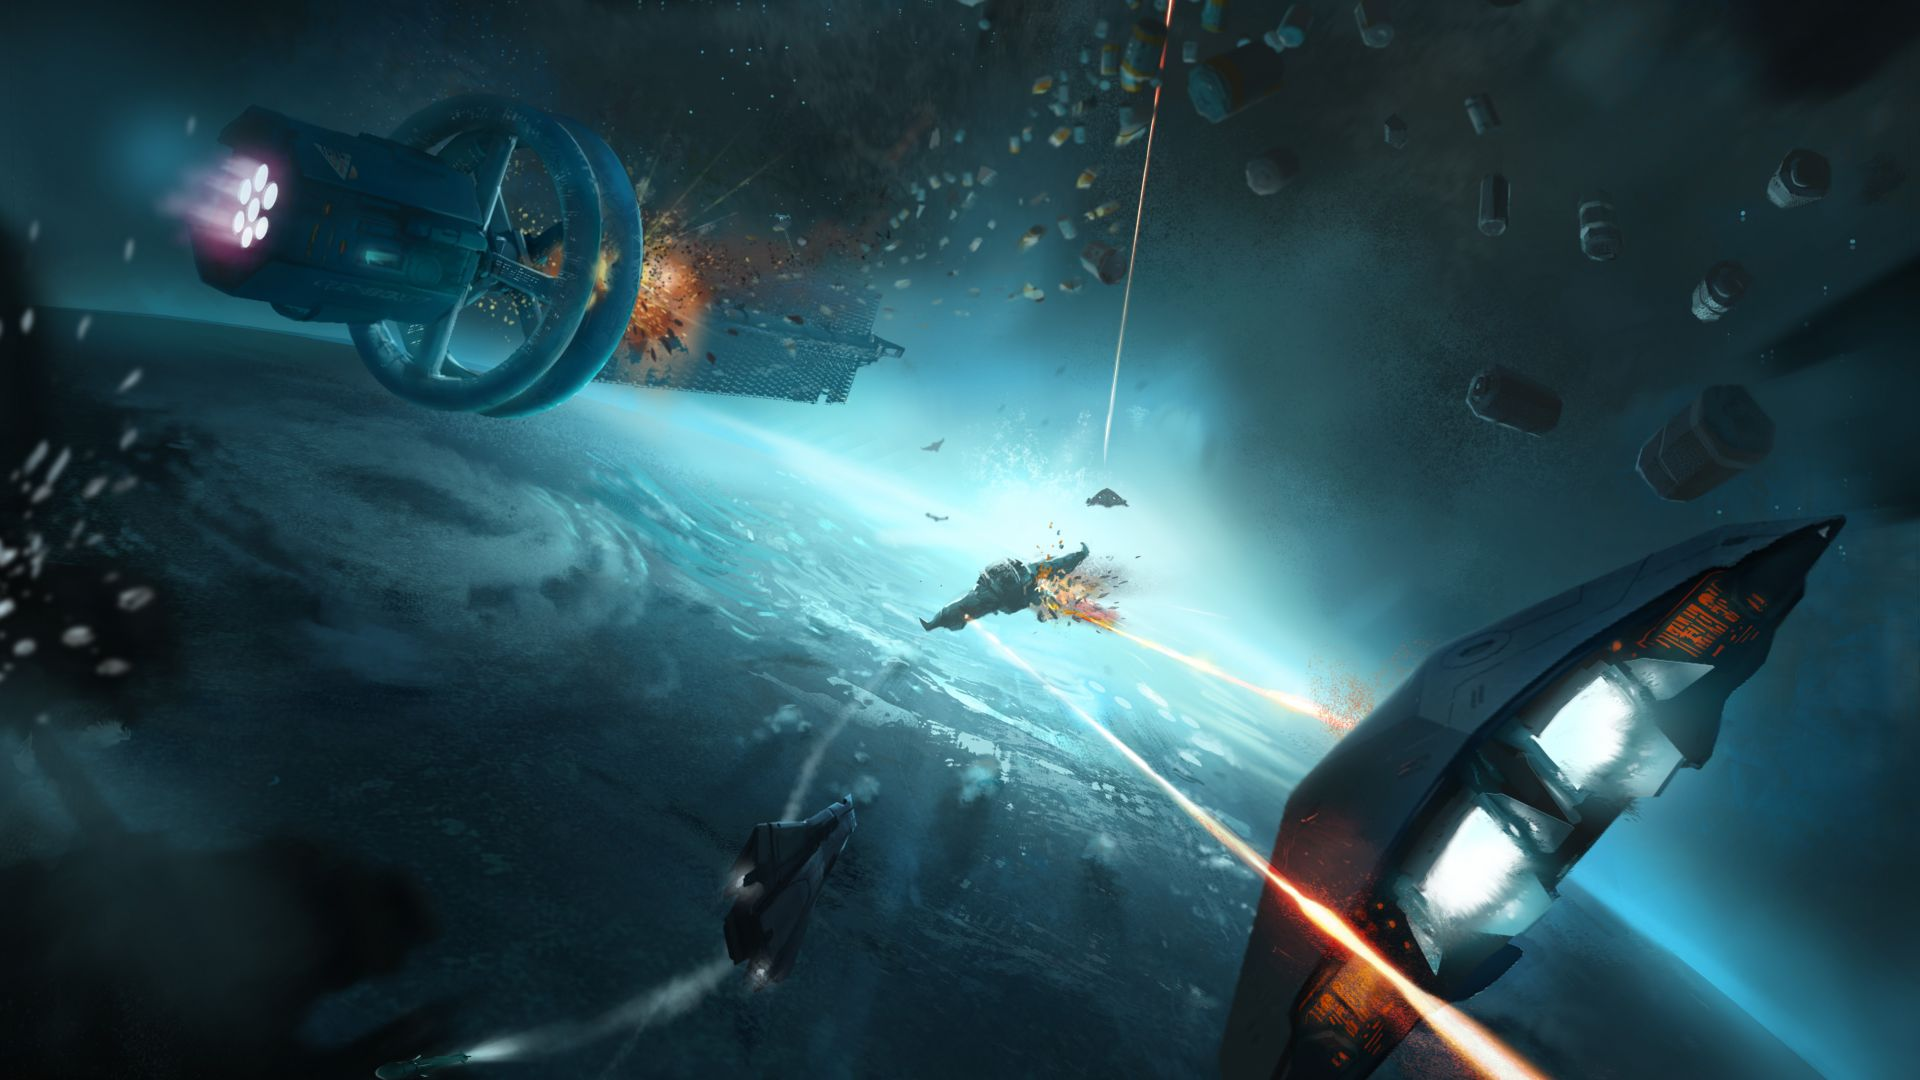 Elite: Dangerous, Best Games 2015, game, space, sci-fi, PC, PS4, Xbox One (horizontal)